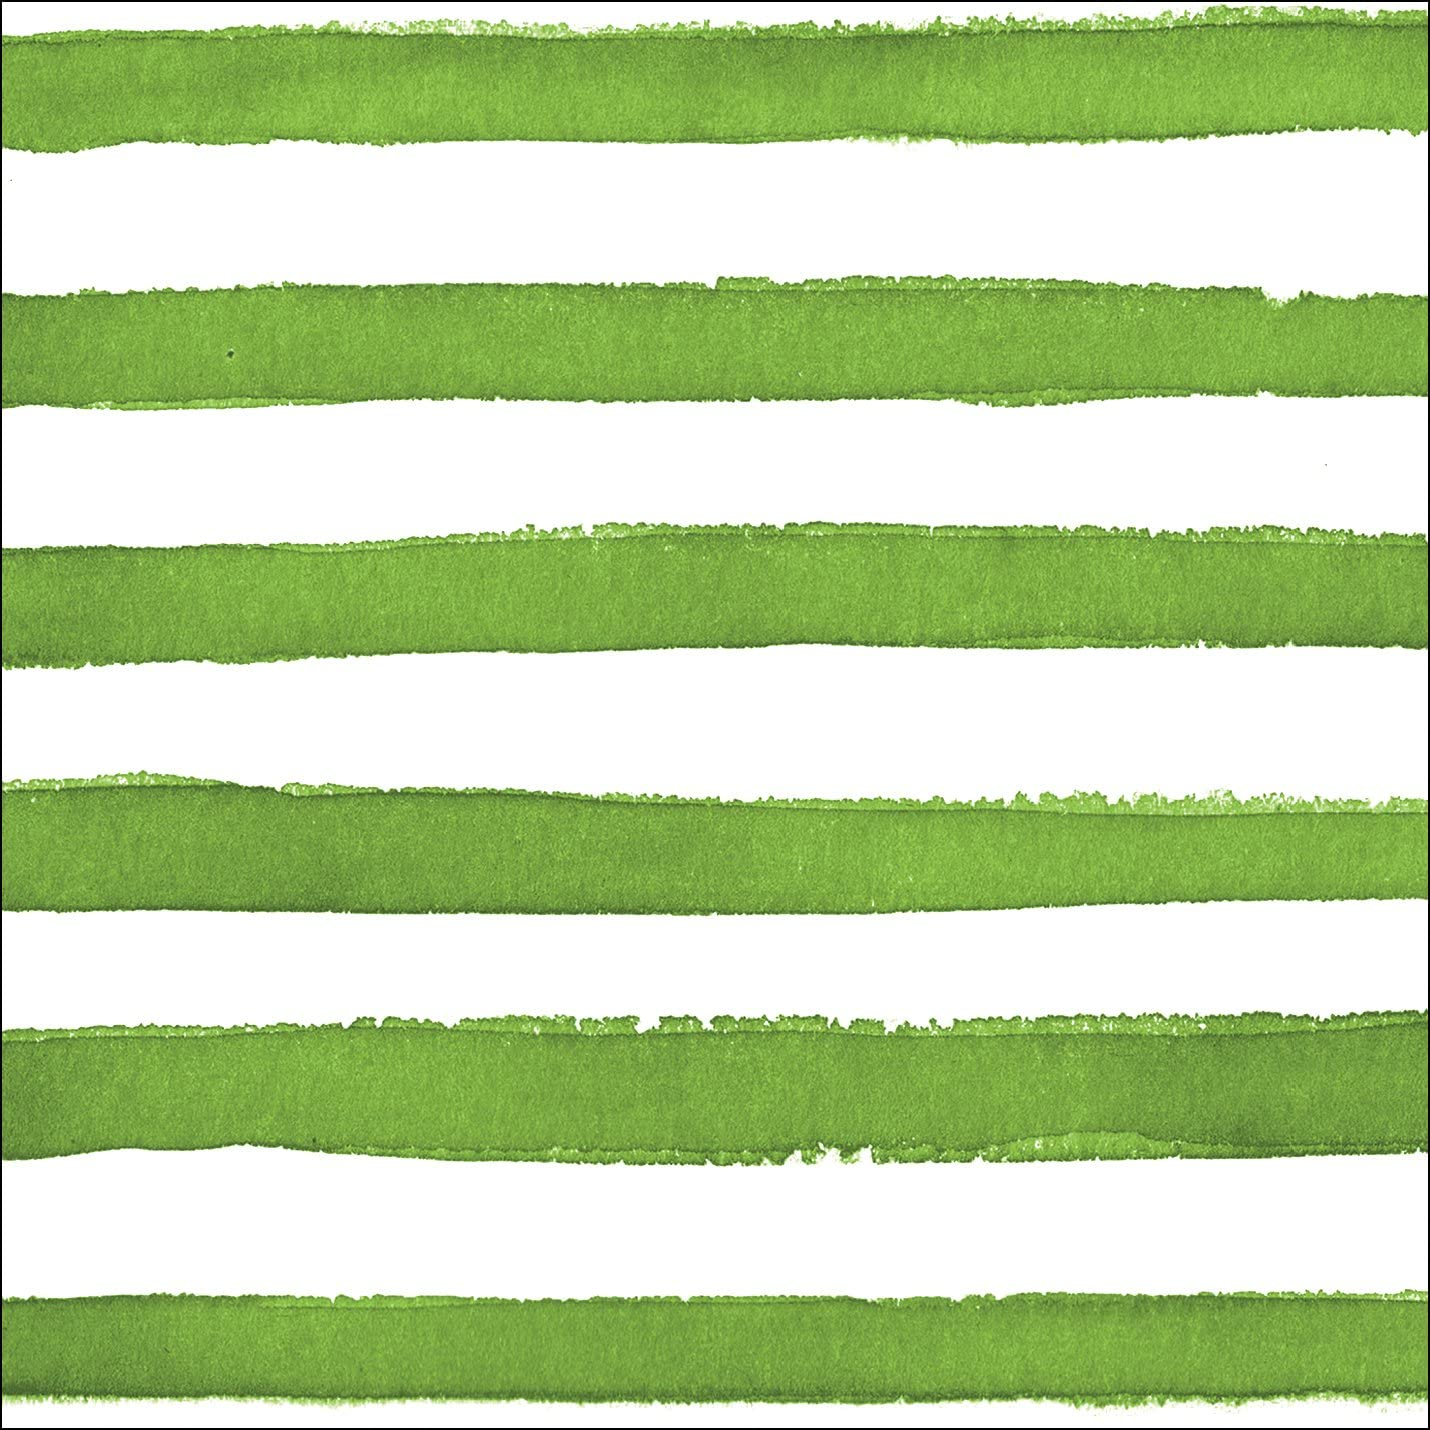 Creative Converting (657531) 24 Count Premium Patterned Beverage Napkins, Dotted and Striped, Verdi